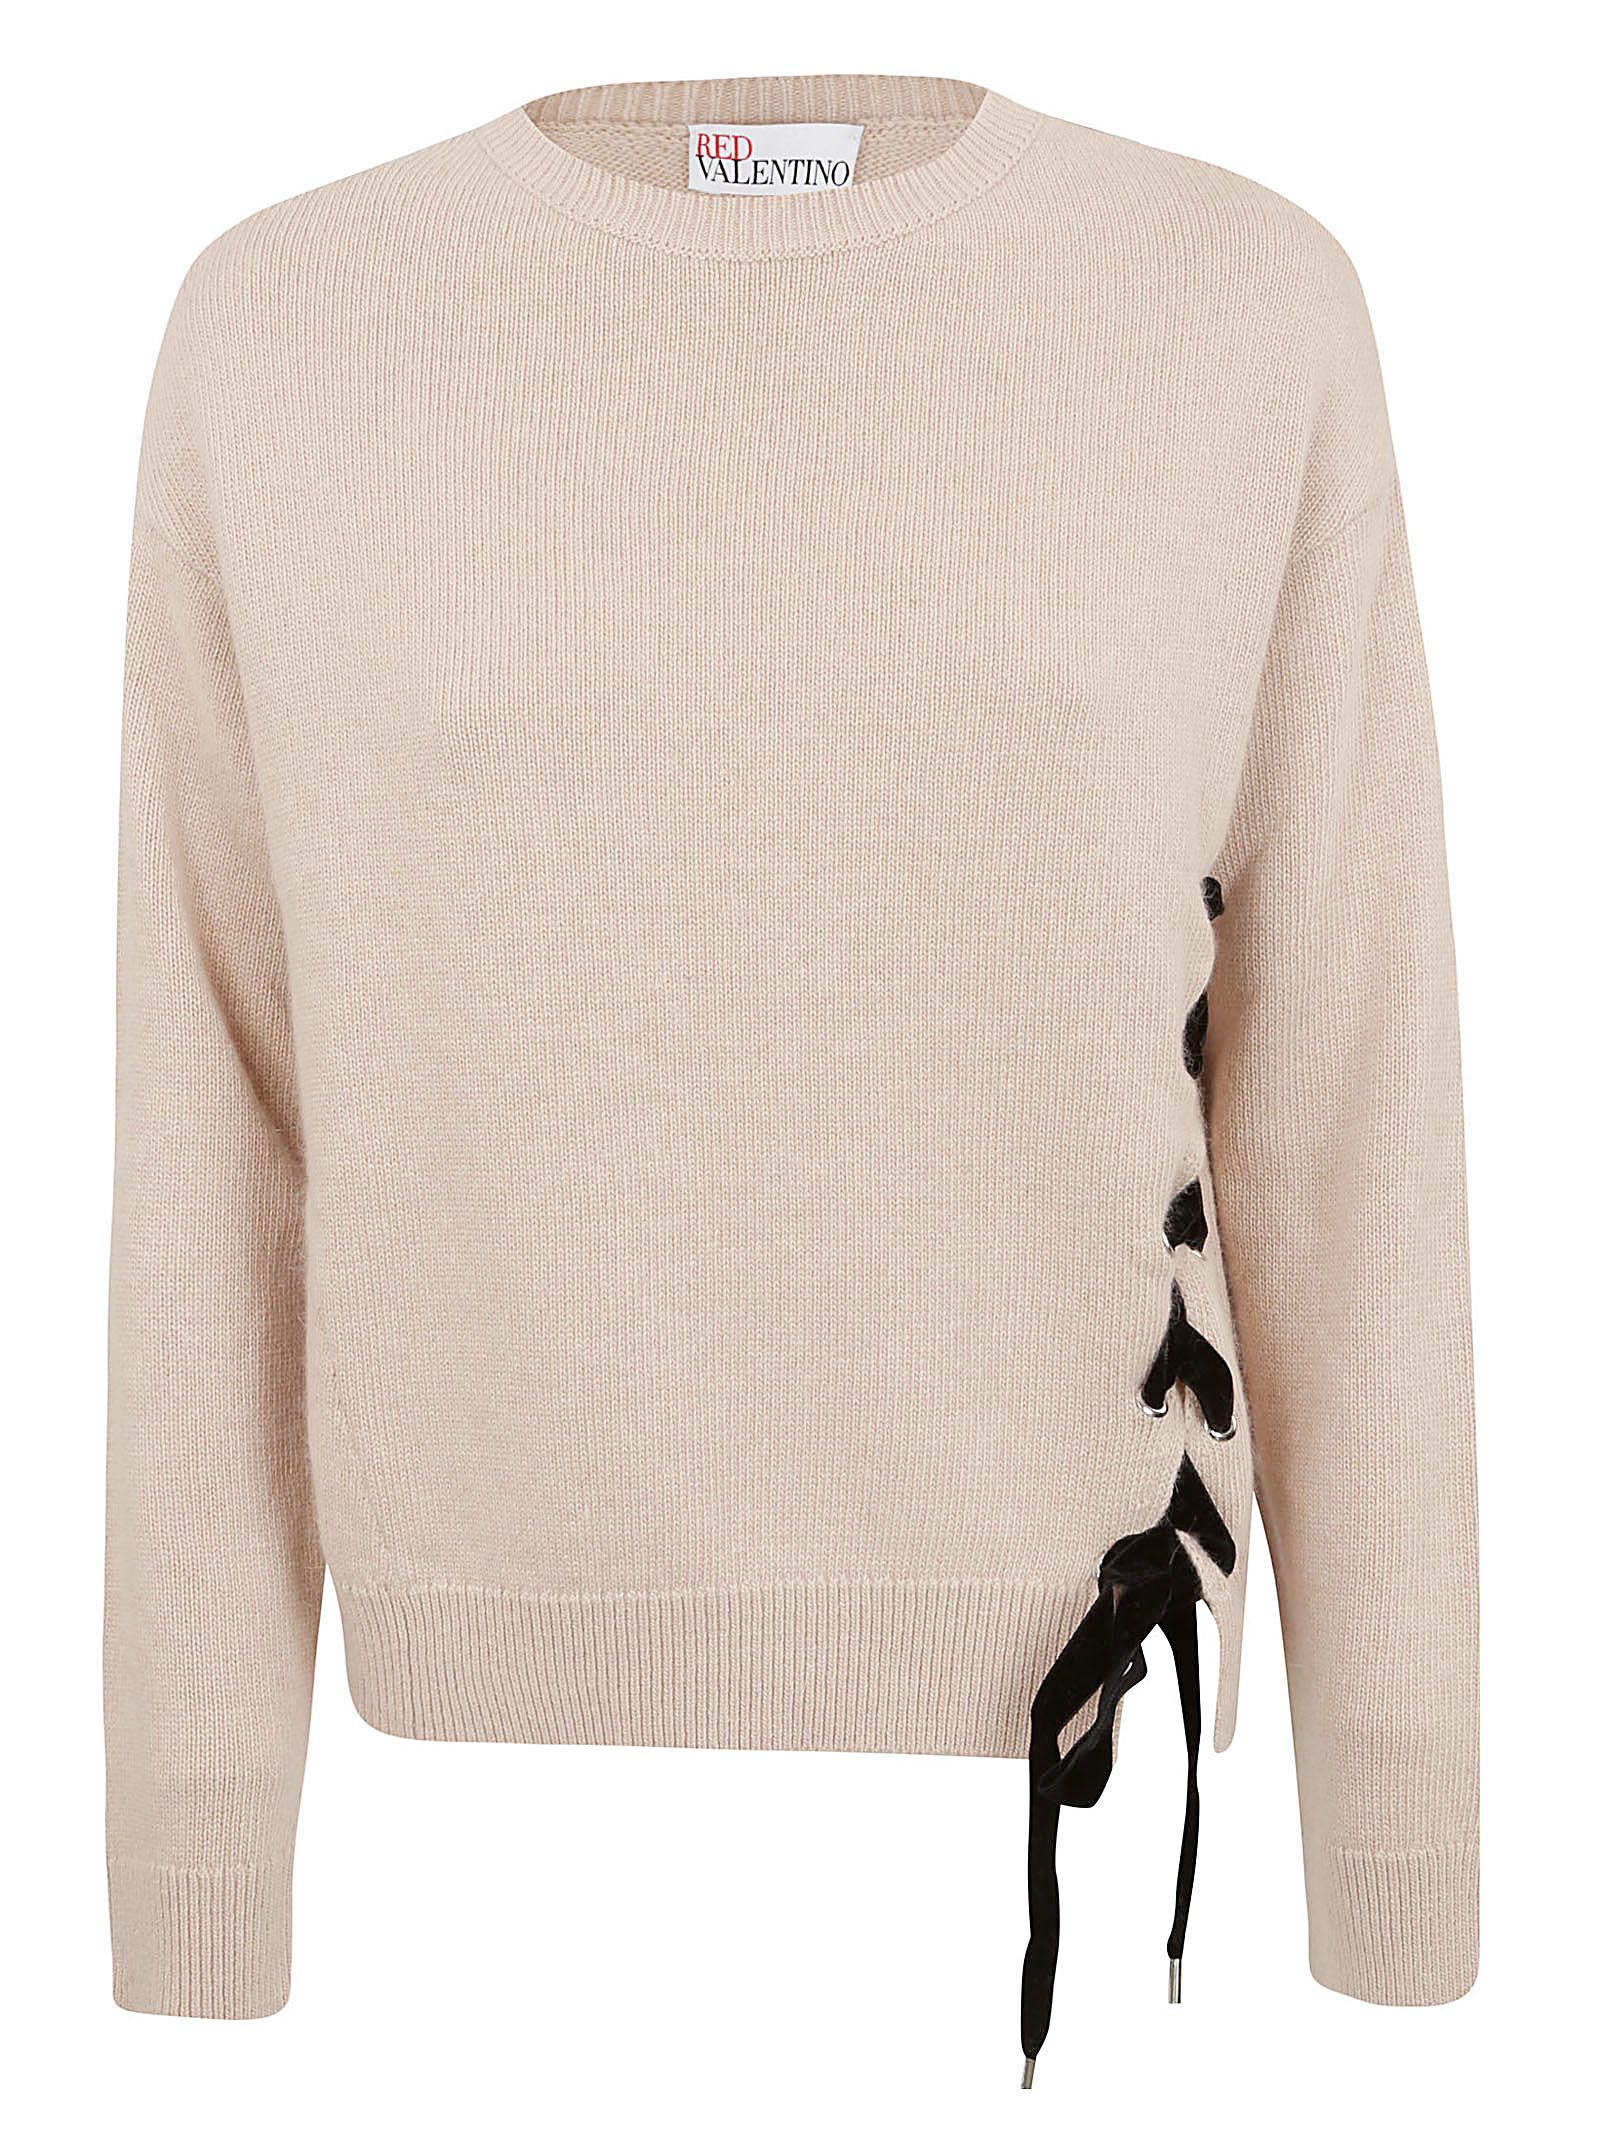 Red Valentino Lace-up Jumper